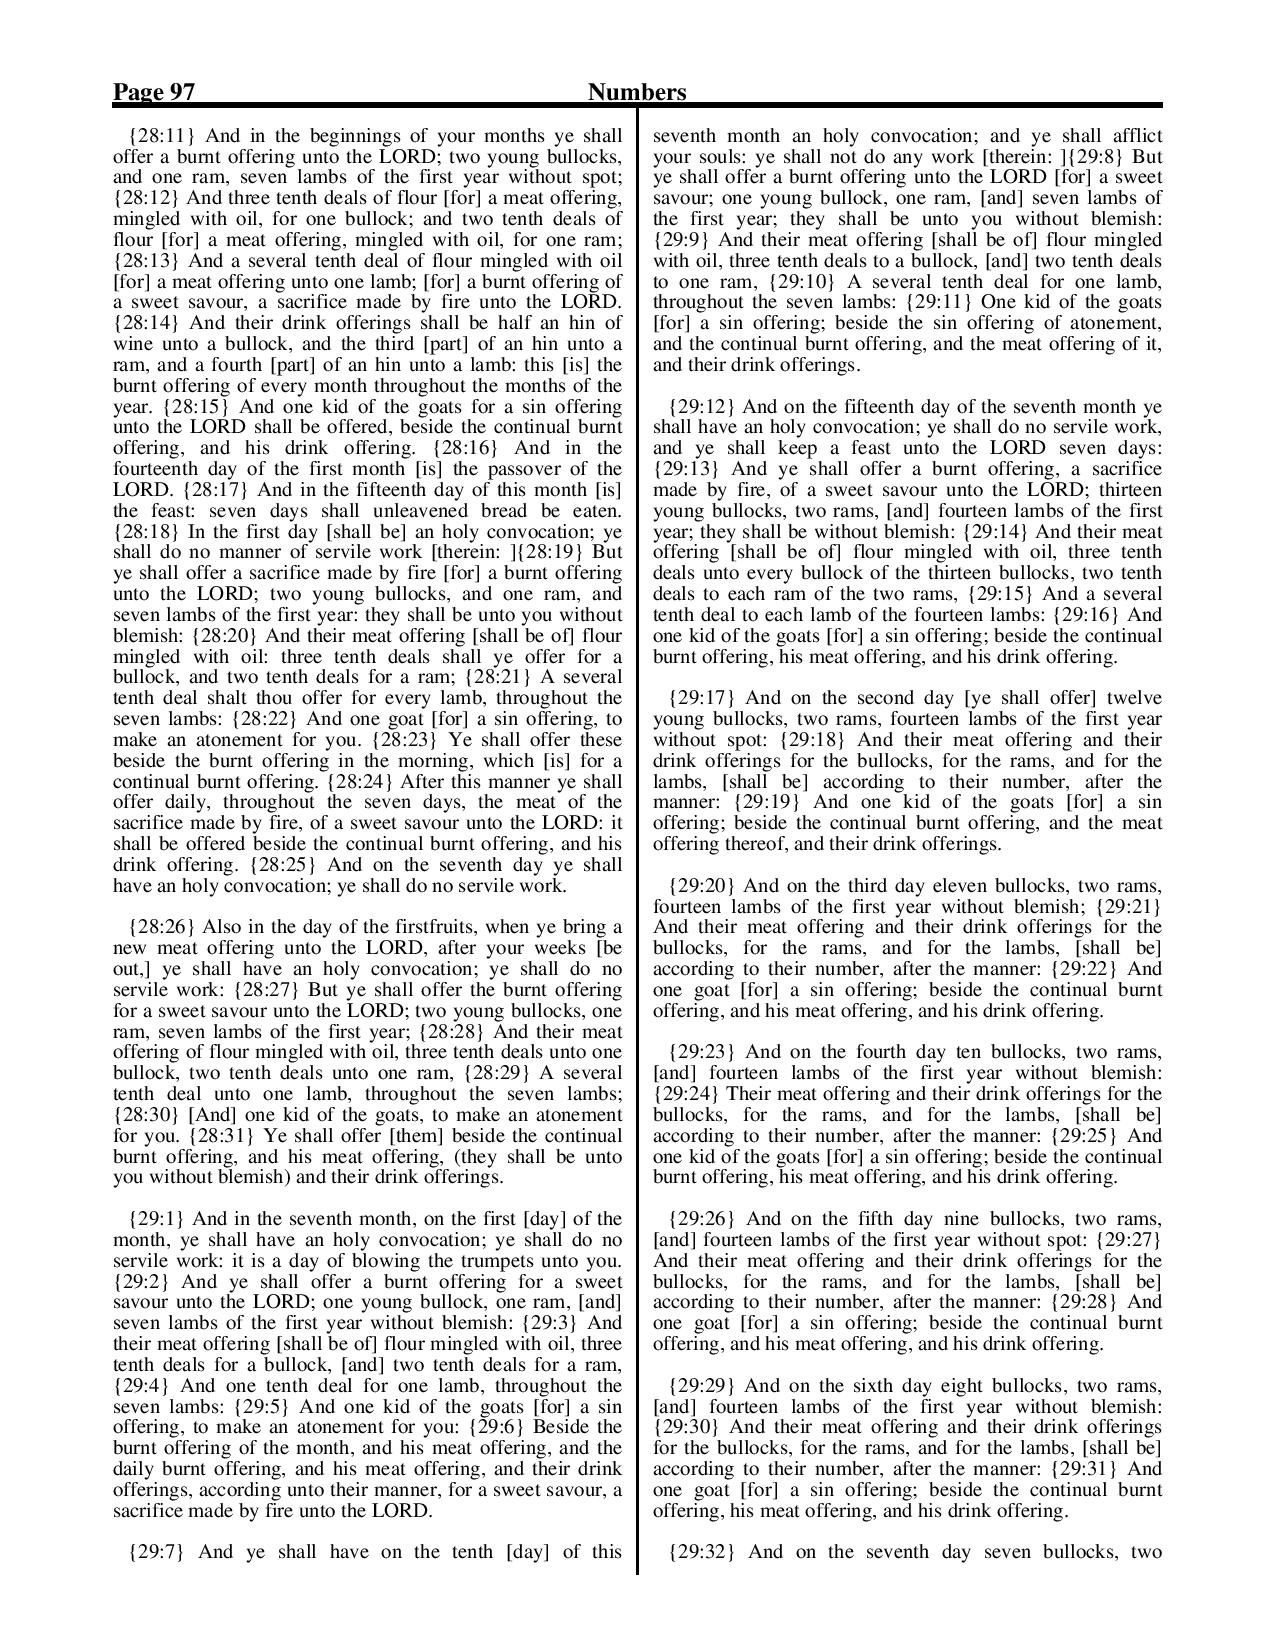 King-James-Bible-KJV-Bible-PDF-page-118